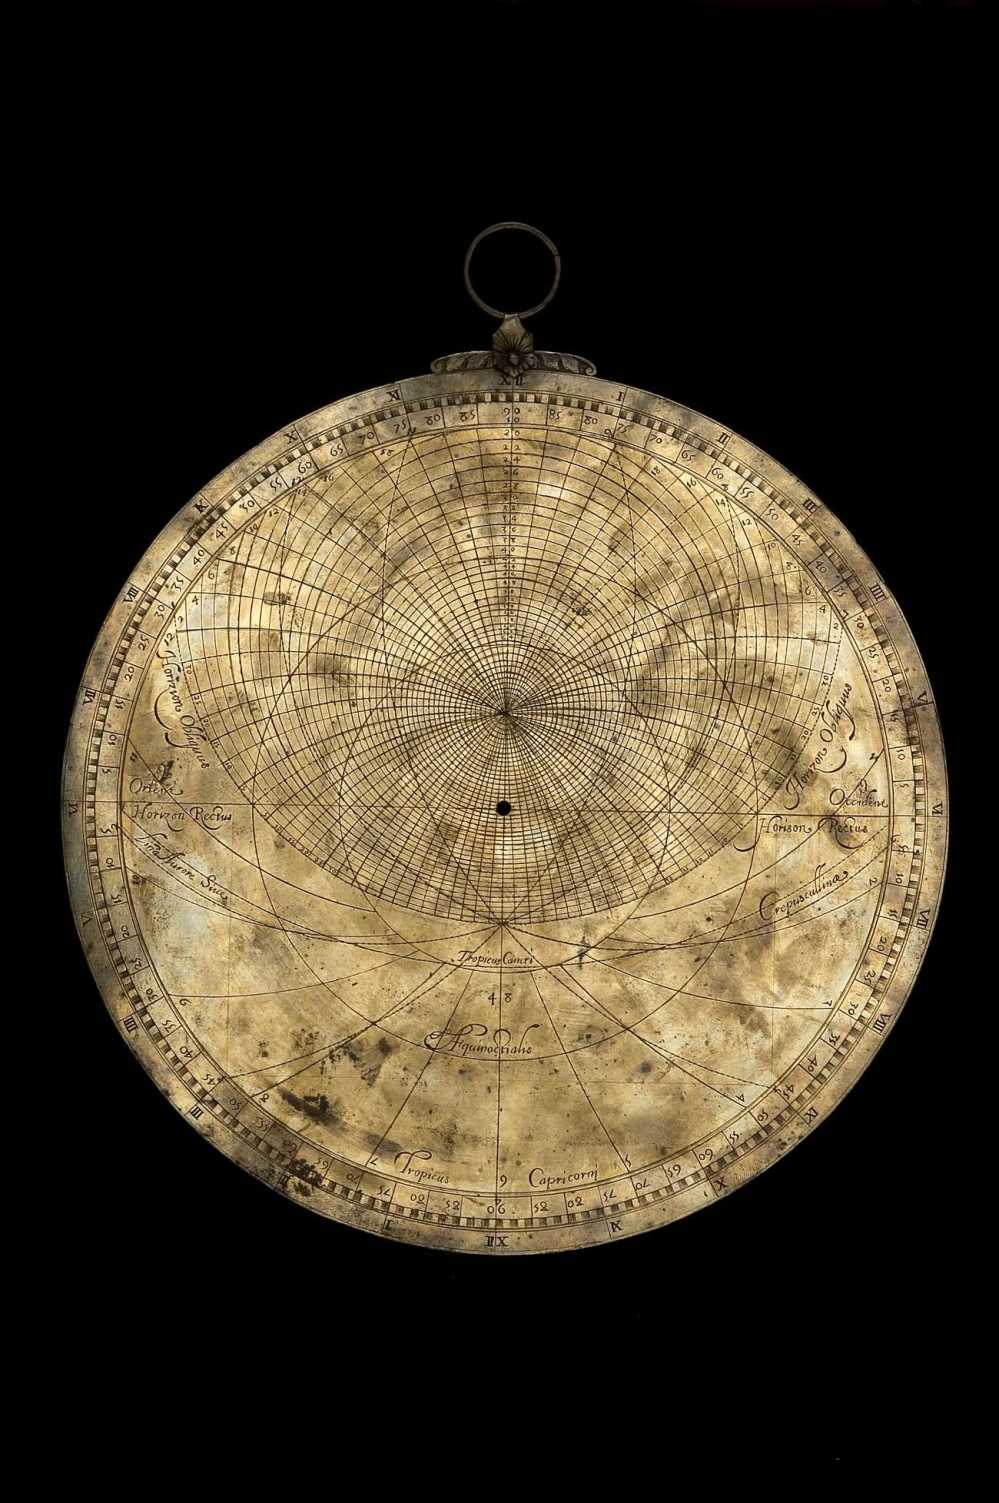 preview image for Astrolabe, Attributed to Philippe Danfrie, Paris, c. 1600